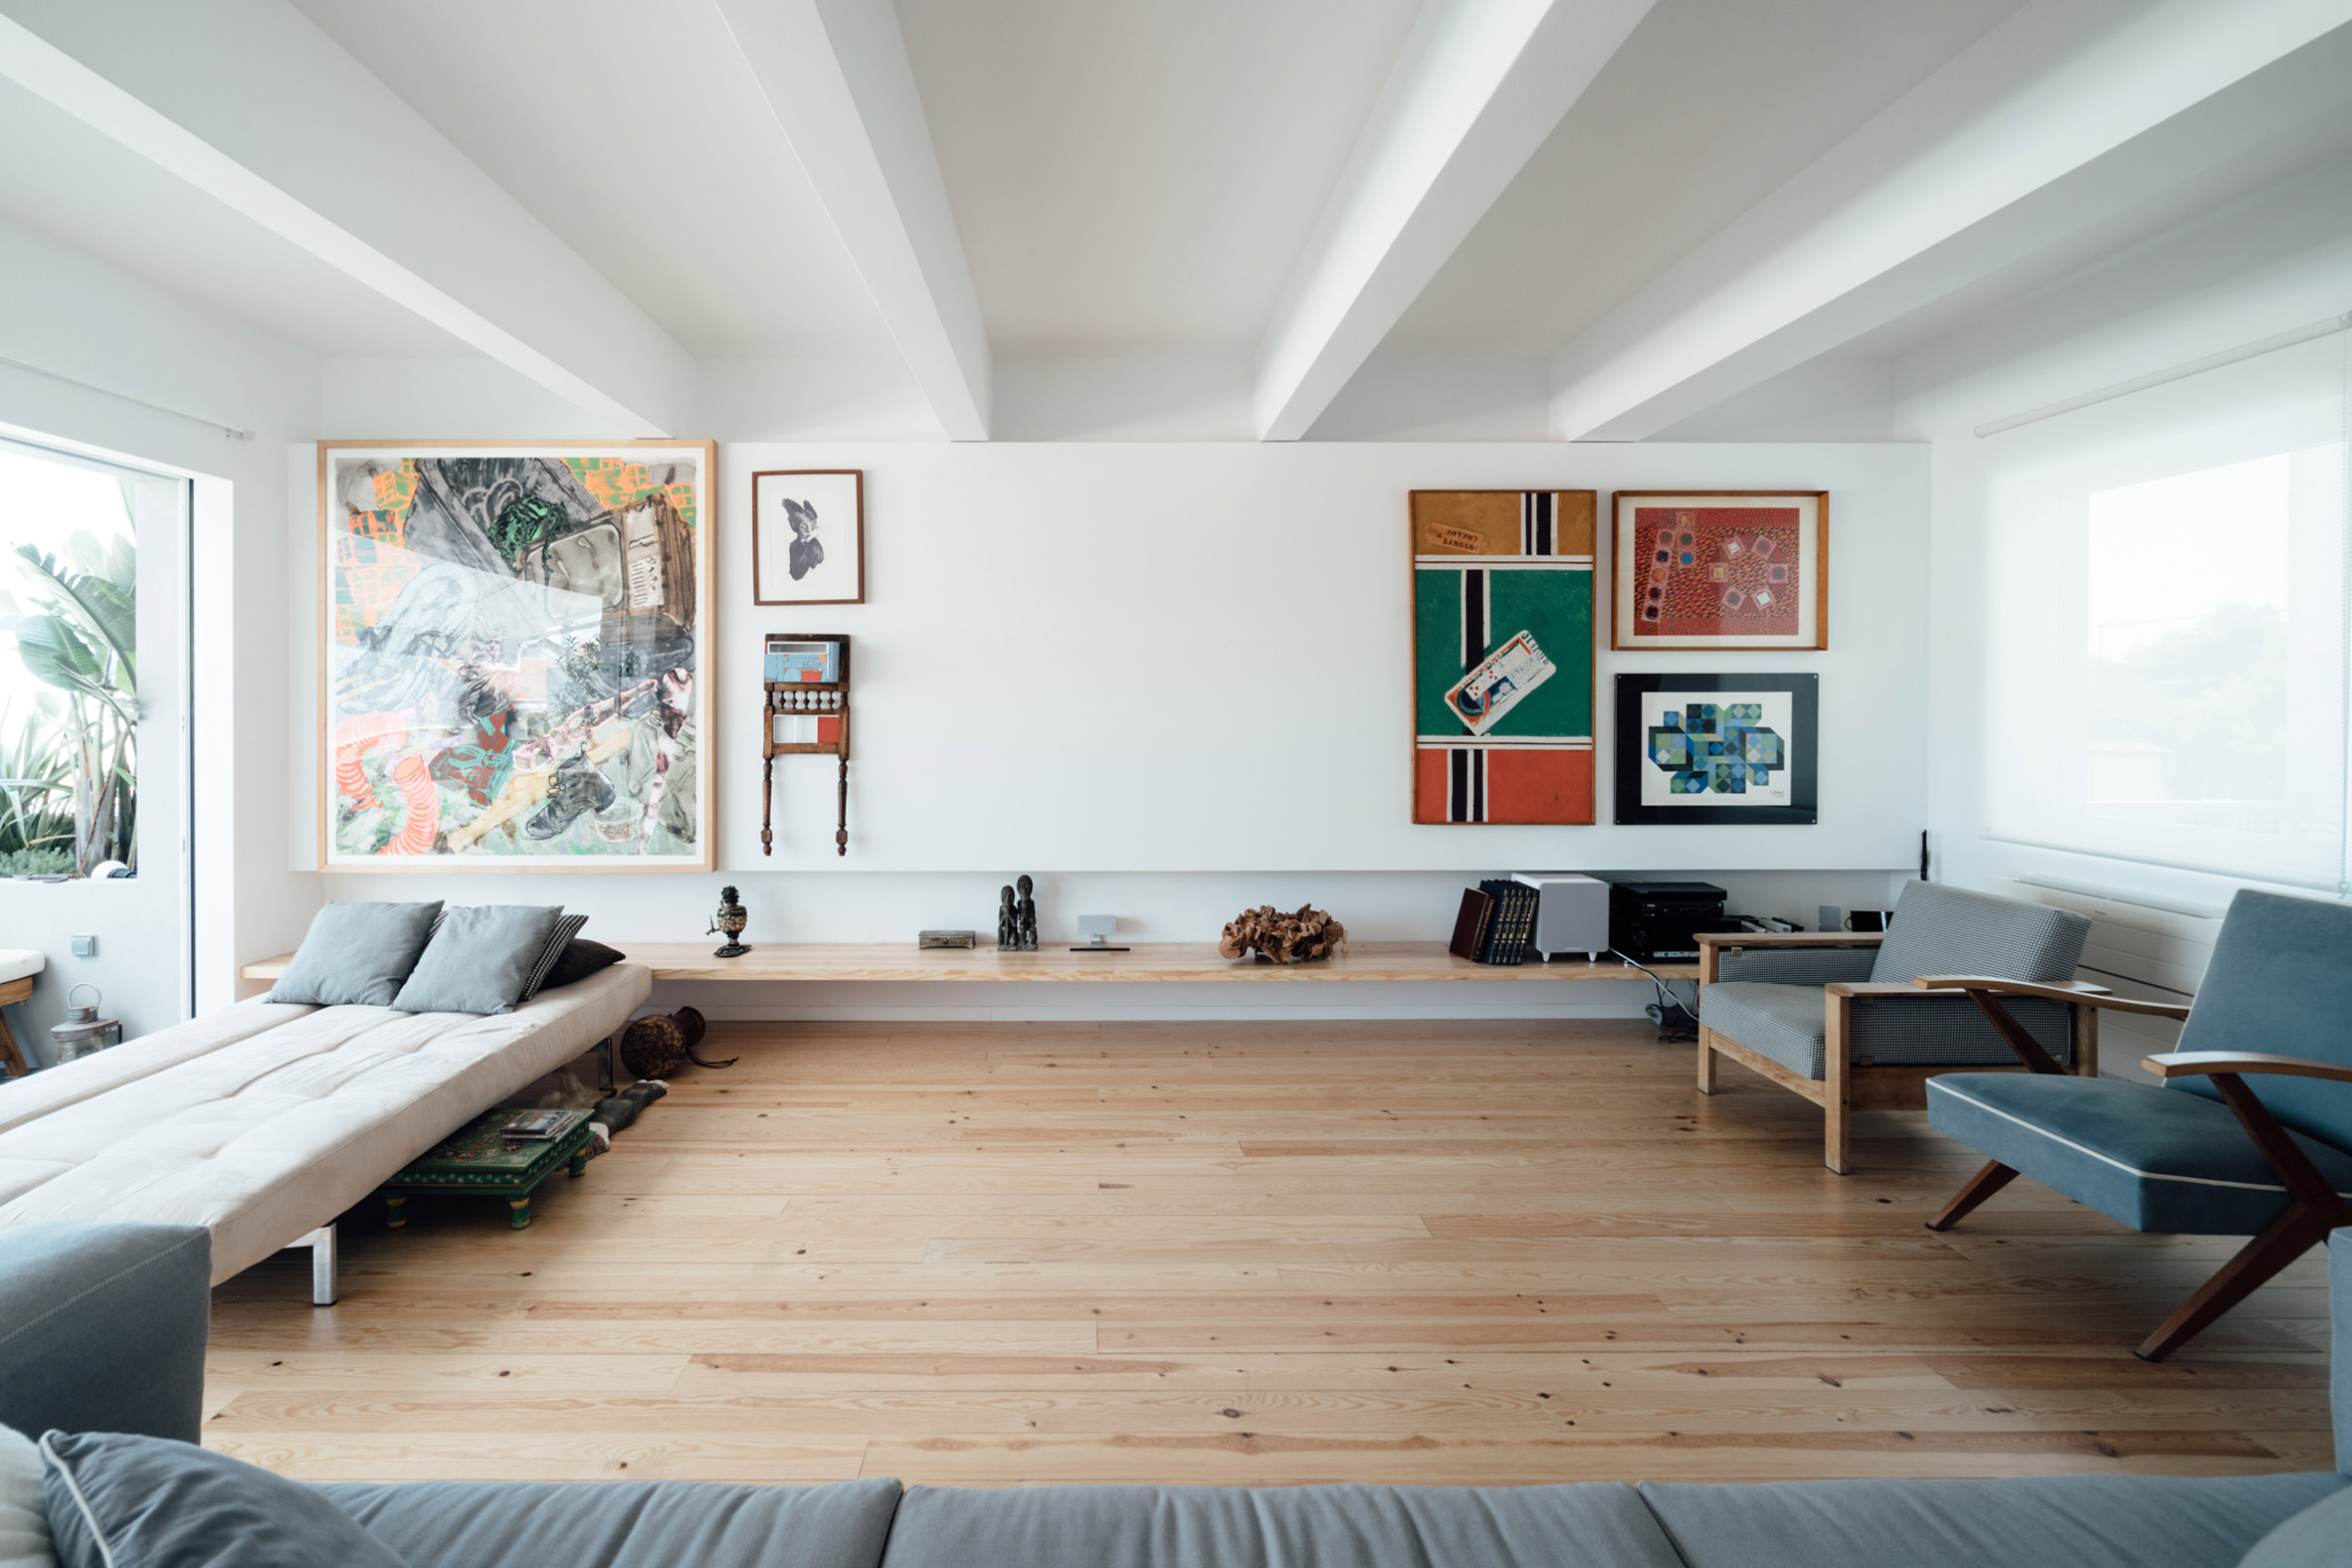 b-a-apartment-atelier-data-apartment-interiors-lisbon-portugal_dezeen_2364_col_3